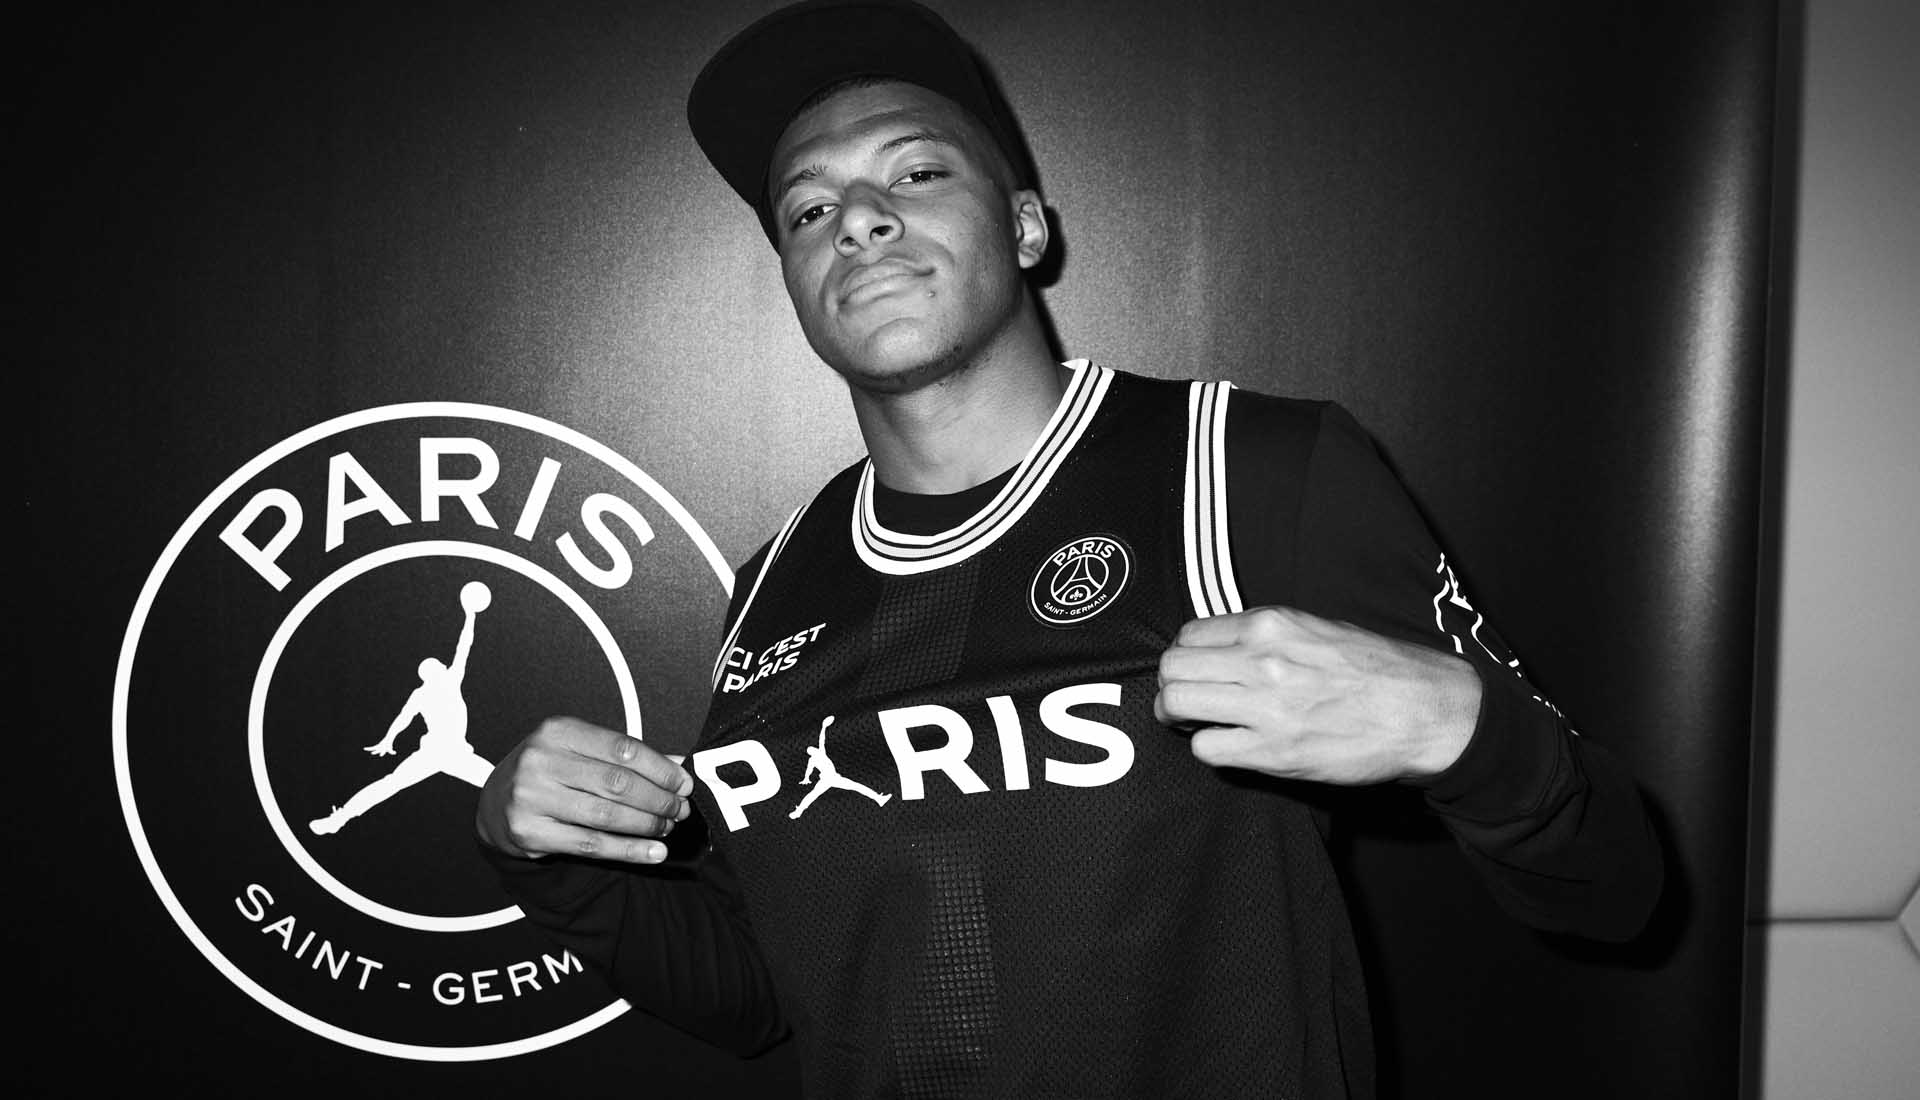 low priced f9510 94c98 In Conversation | Kylian Mbappé Talks Jordan x PSG ...